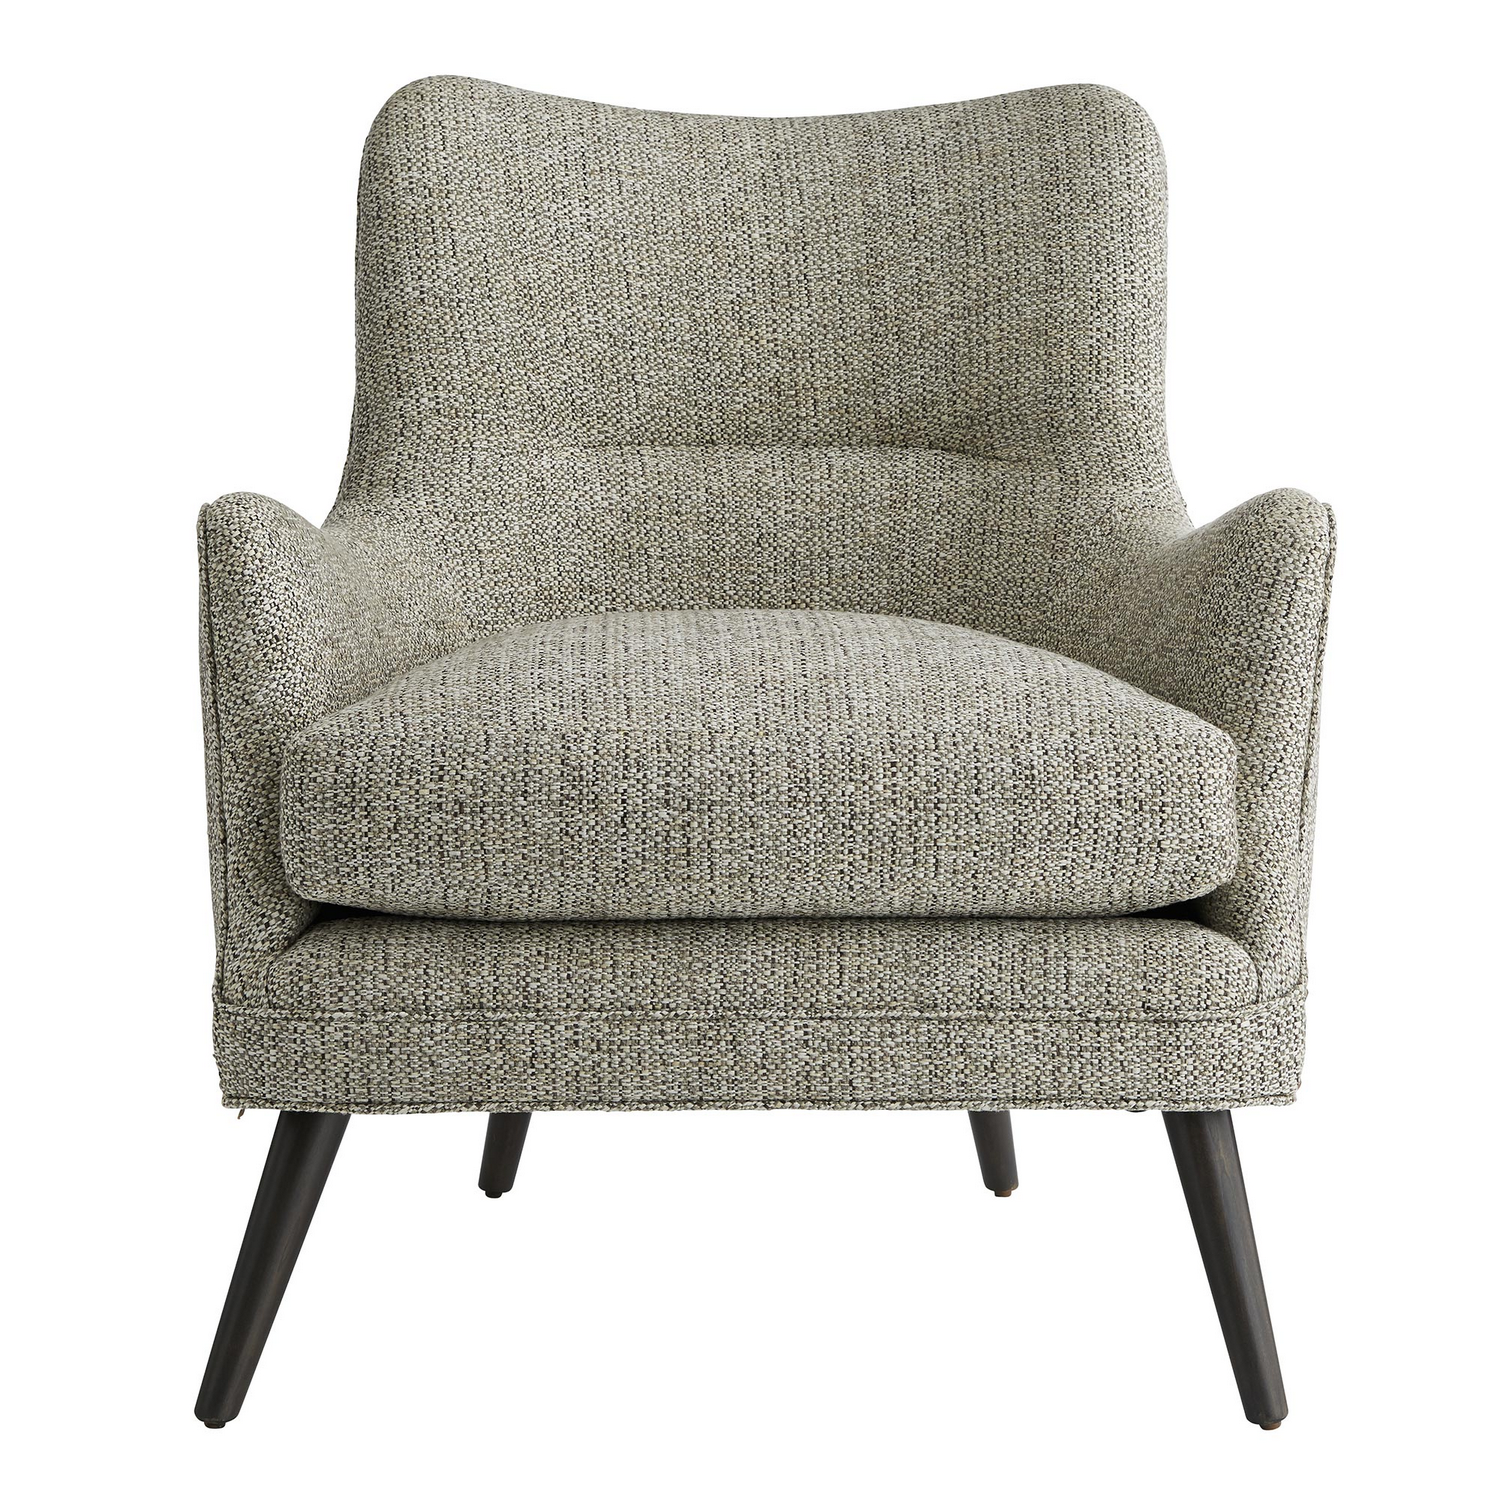 Chair by Arteriors 8014